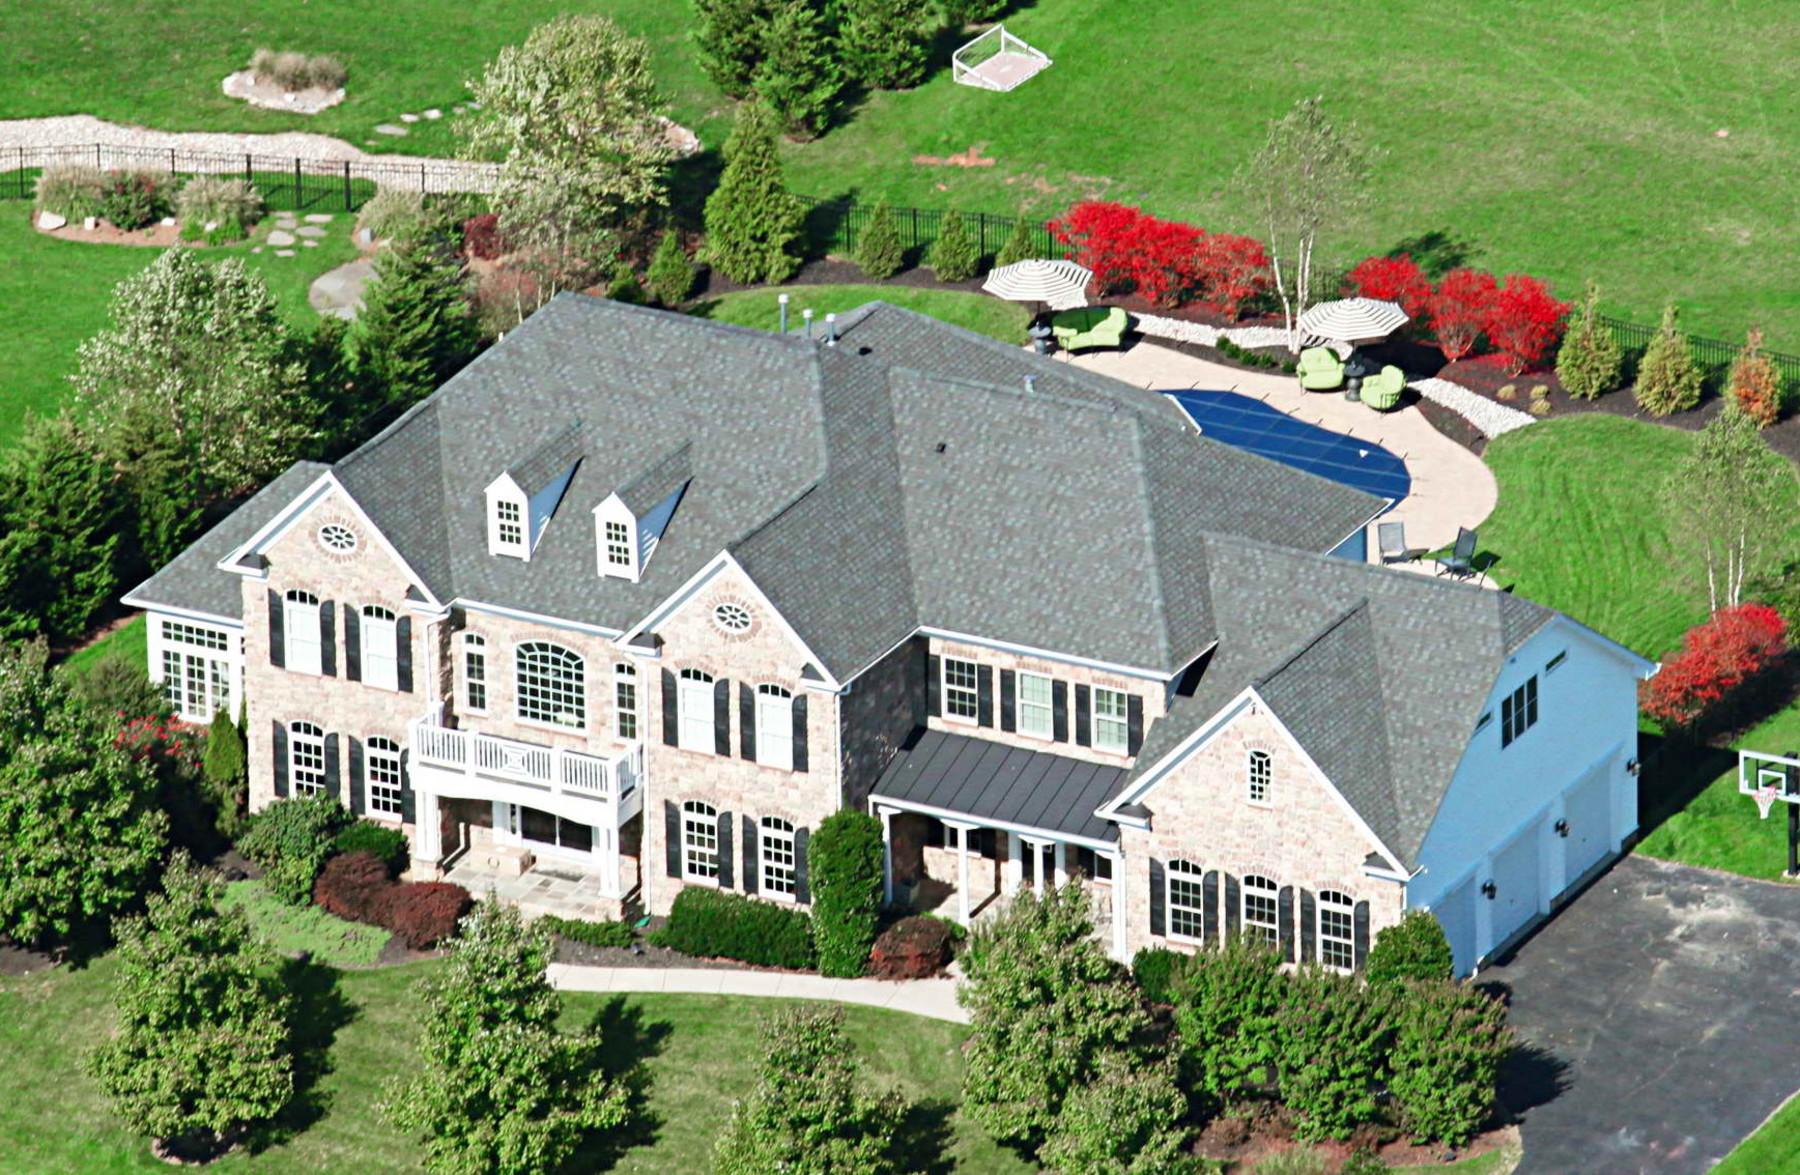 Single Family Home for Sale at Former Model Home with Pool 41958 Greenlook Ln Ashburn, Virginia 20148 United States